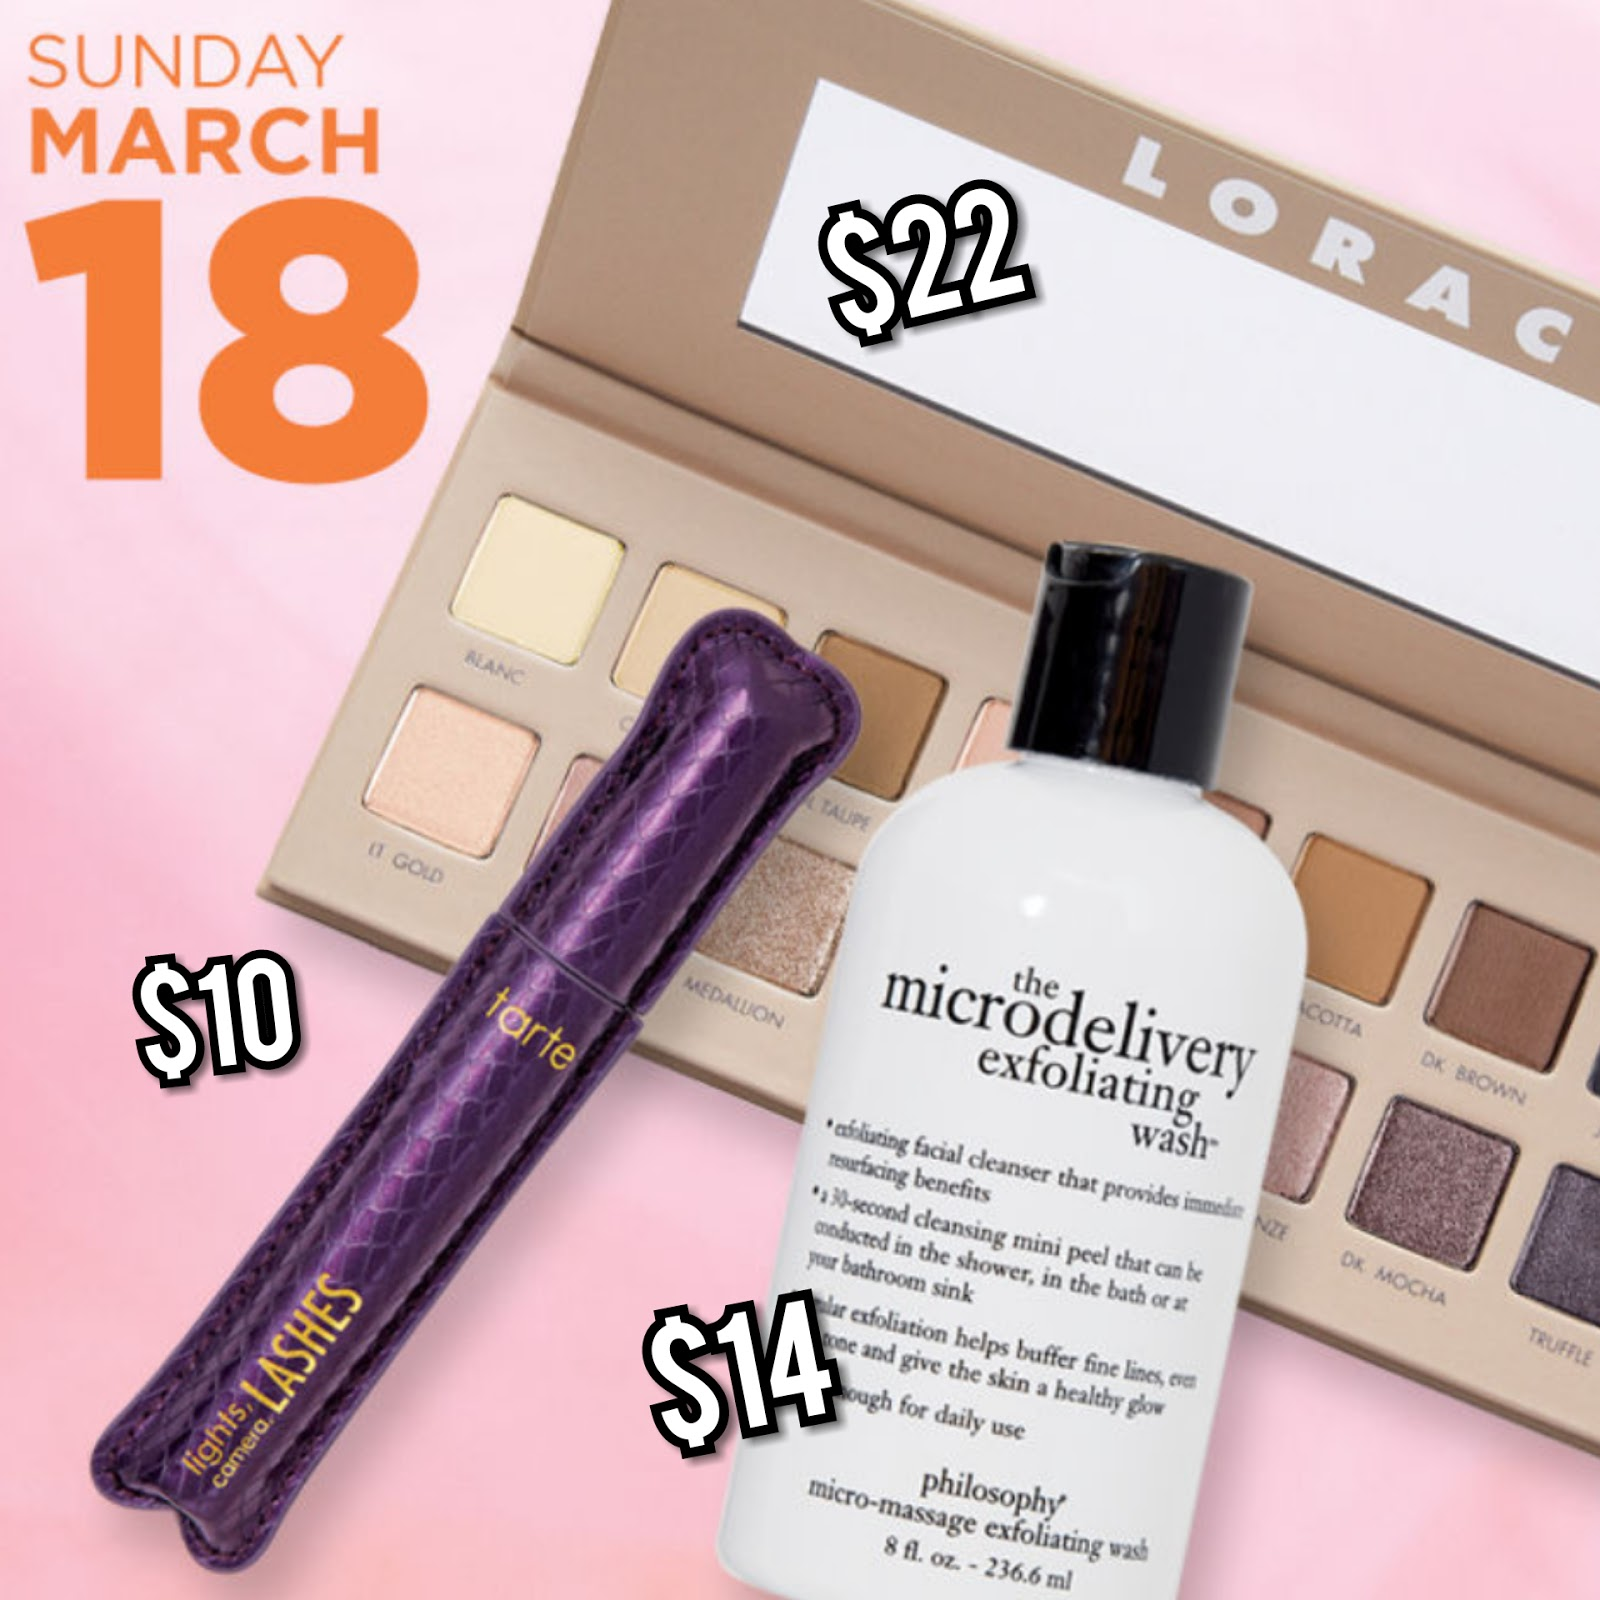 ulta 21 days of beauty march 2018